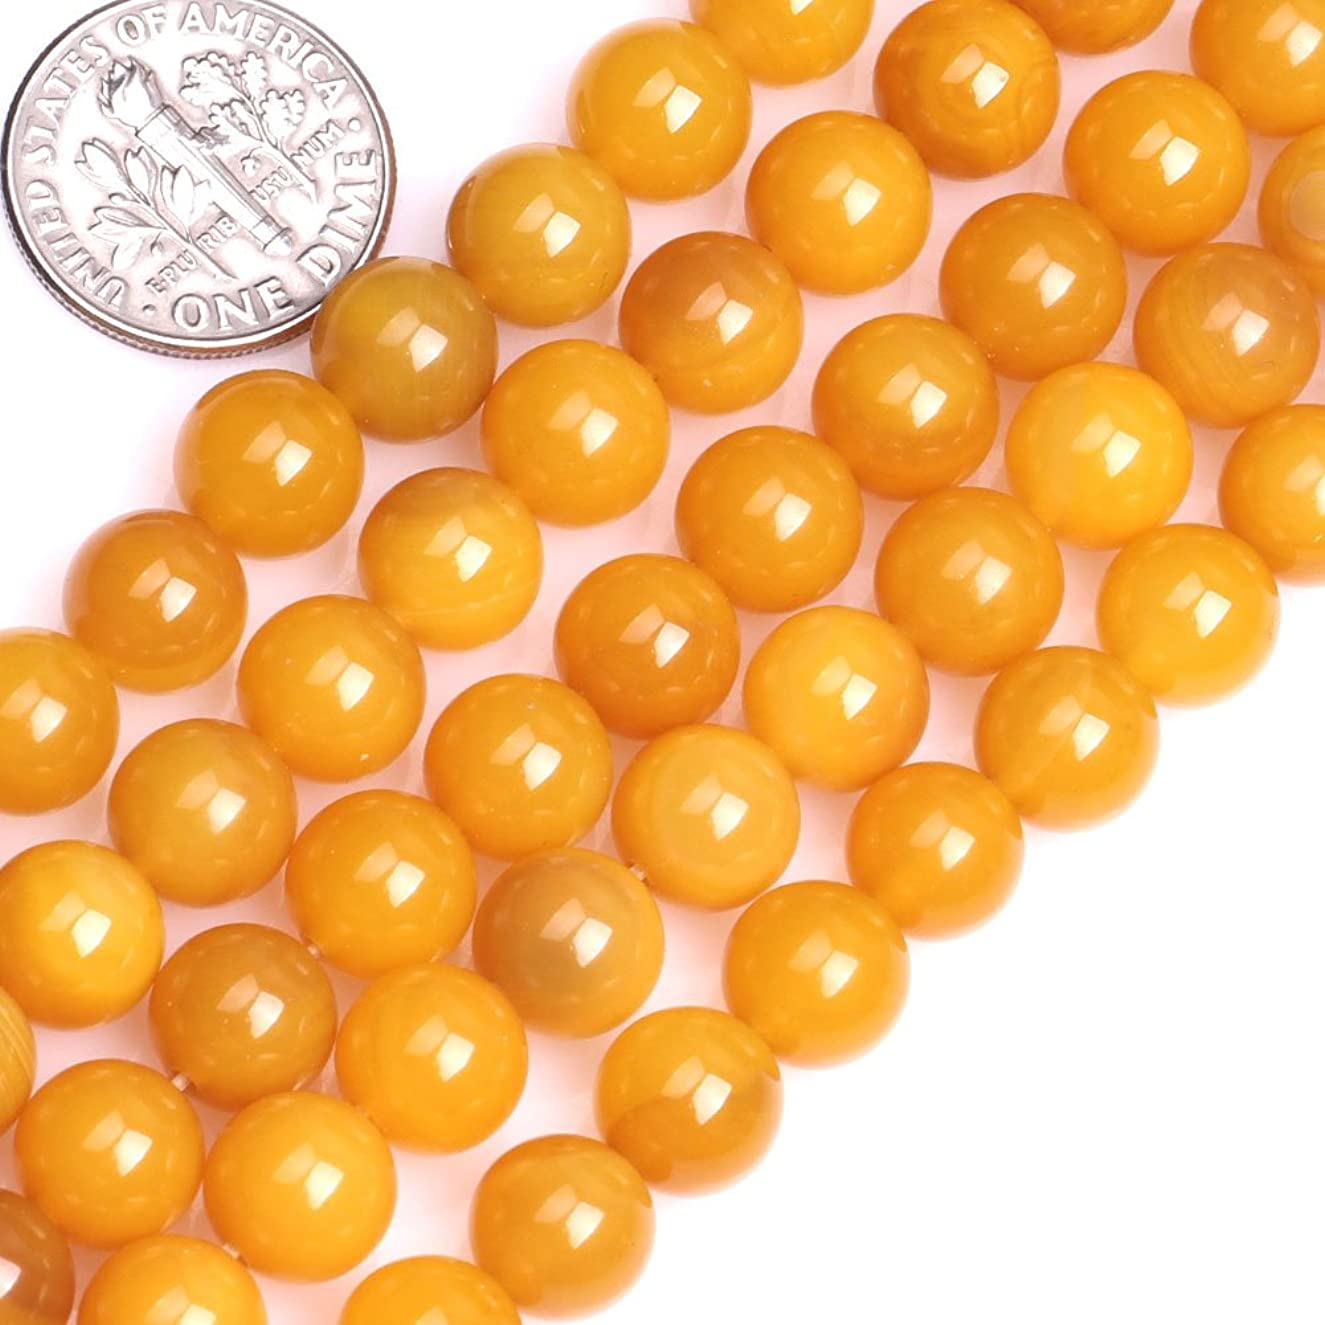 GEM-inside Gorgeous Natural Yellow Agate Gemstone Loose Beads Round 8mm Round Crystal Energy Stone Power For Jewelry Making 15 Inches